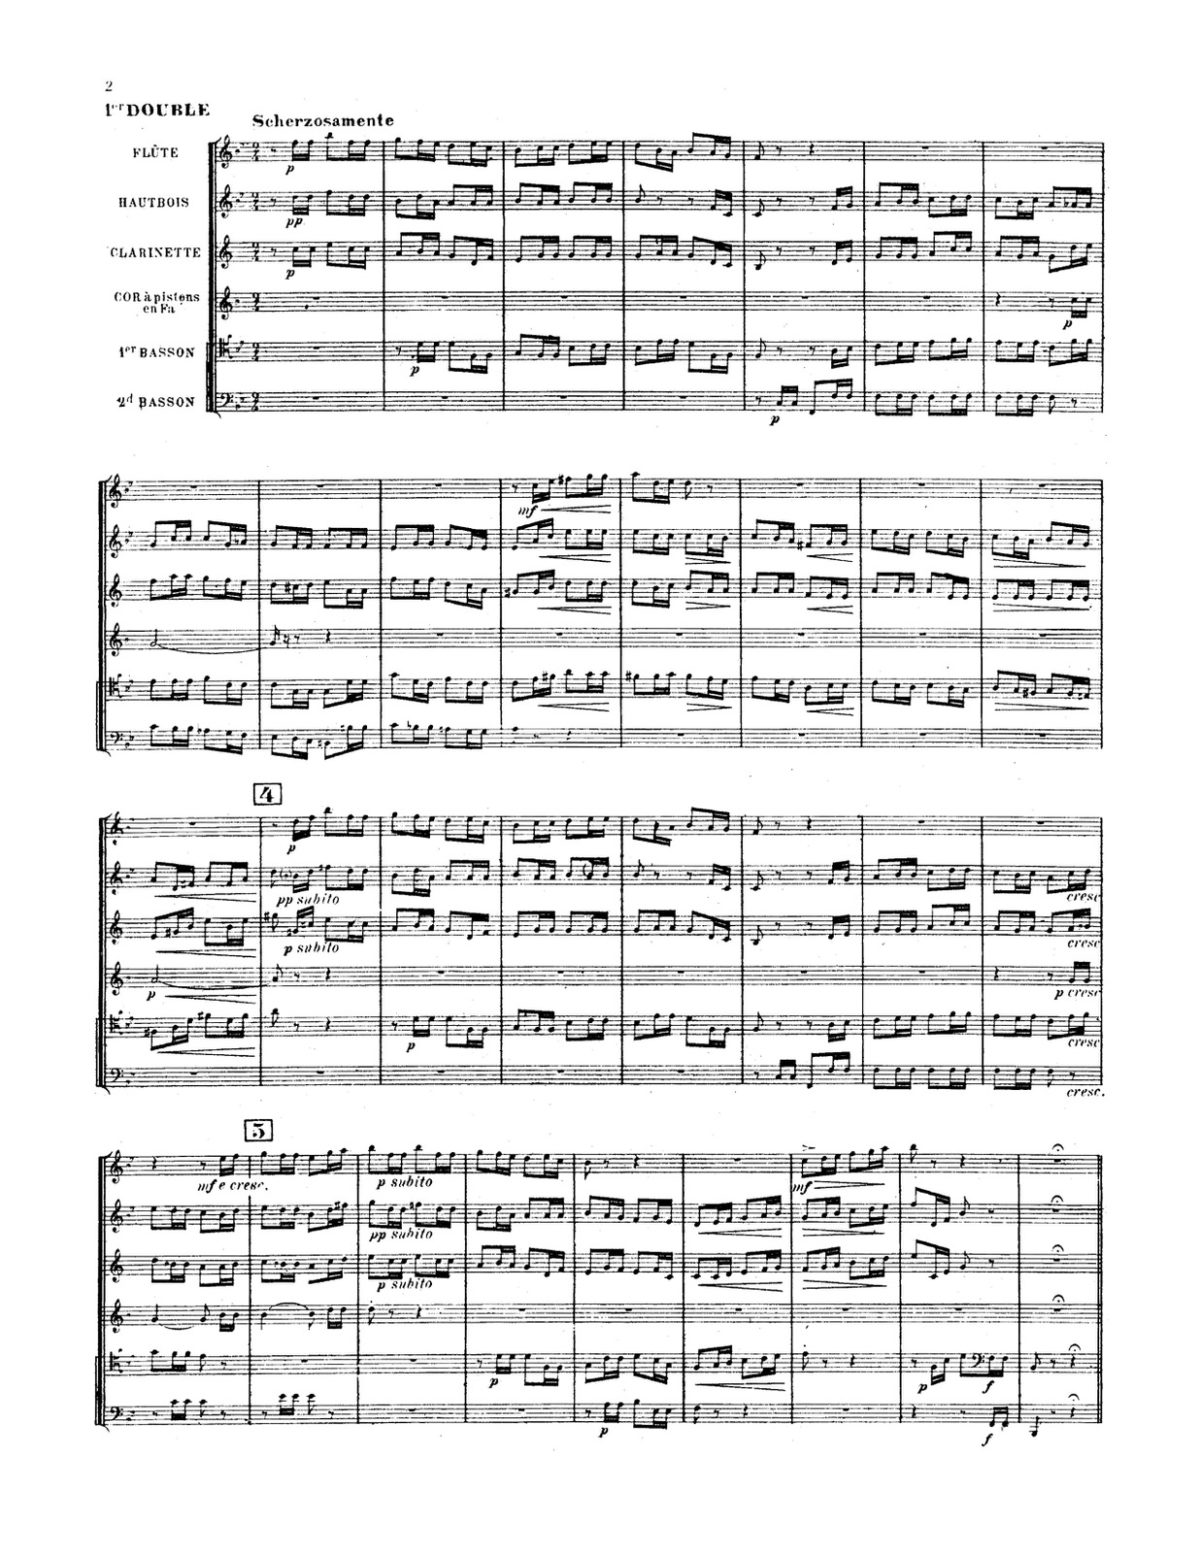 Pierné, Pastorale Variée Parts and Score-p30